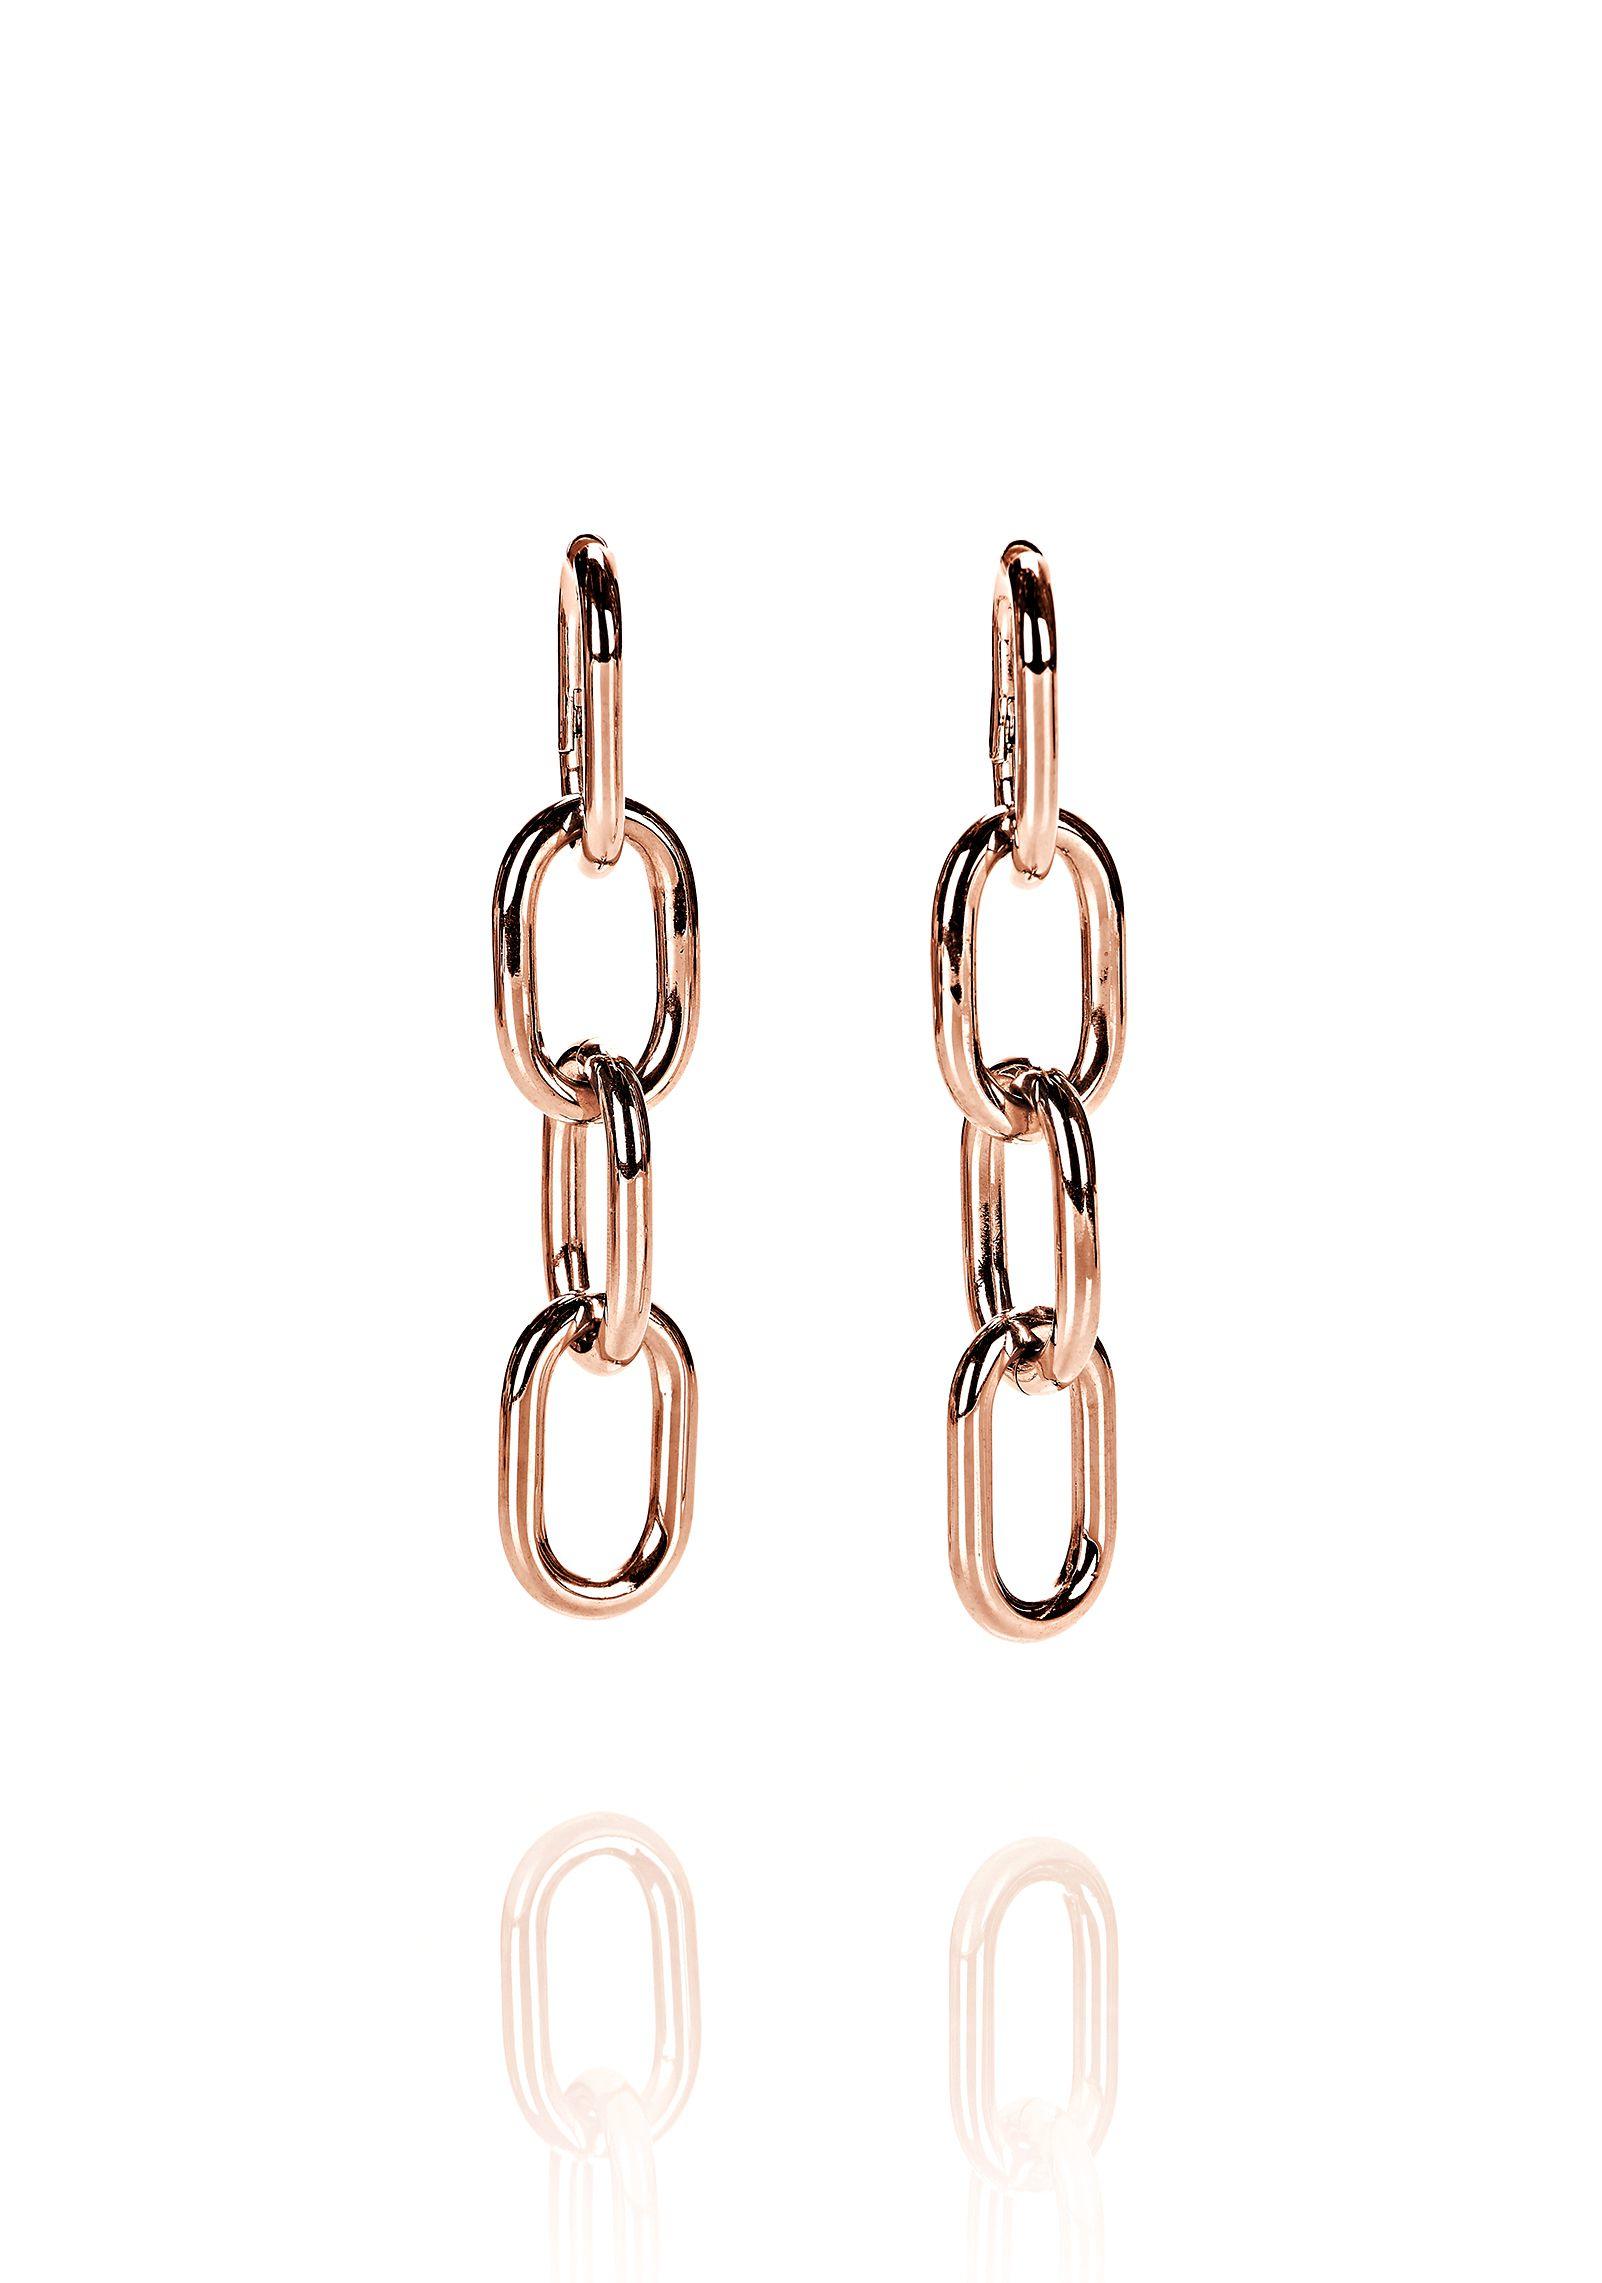 Alexander Wang Four Link Chain Earrings In Rose Gold In